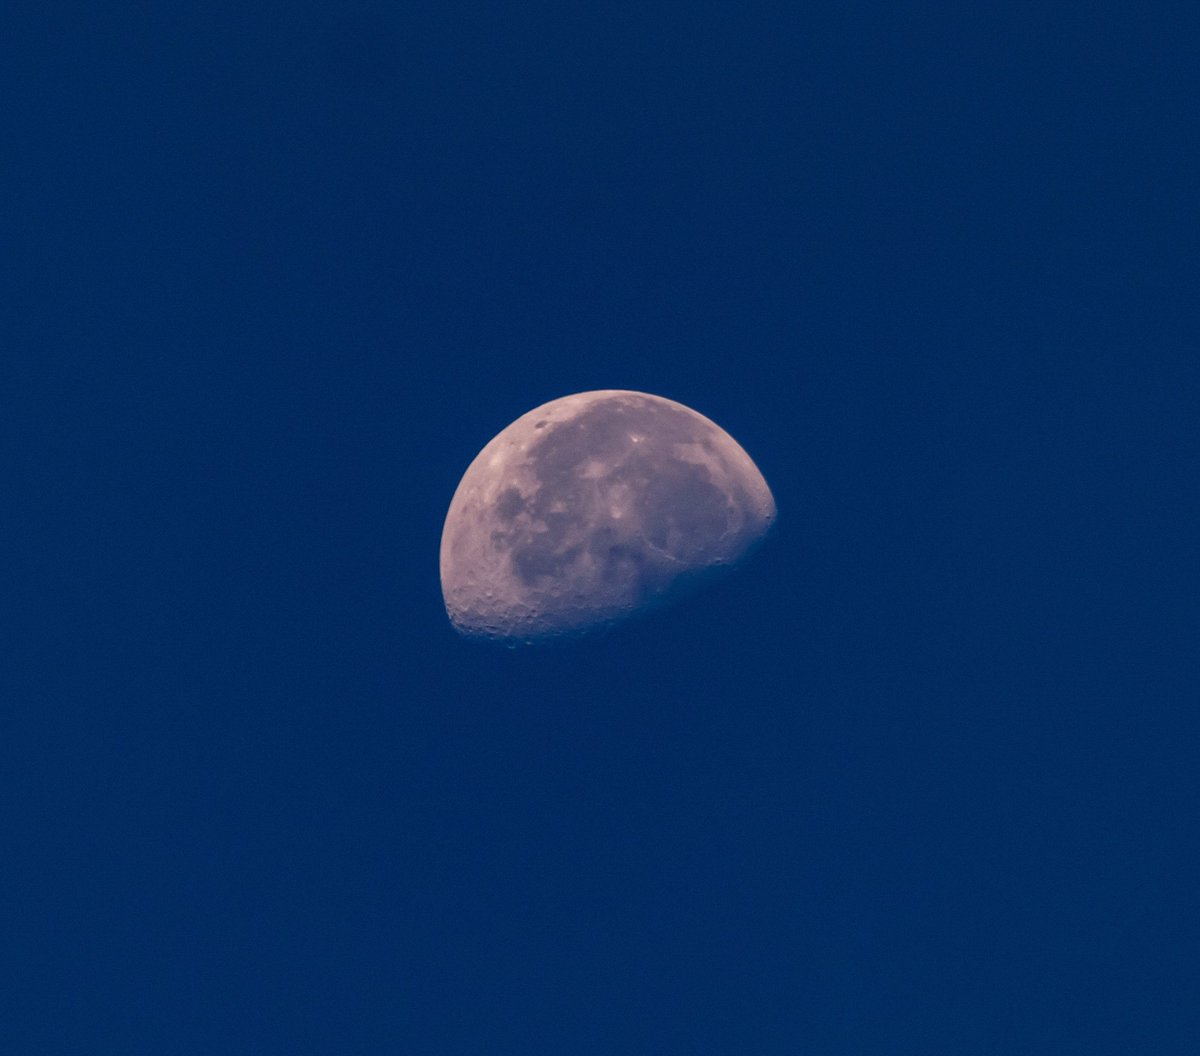 The moon this morning. #moonphases #waninggibbousmoon #canonsubjectchallenge #sky #weather #observethemoon #skywatcher #astrophotography #bluesky #blueskymoon #luna #naturephotography #naturewalks #naturetherapy #canont7i #summersky #summermoons #moonphotos https://t.co/s1mwPjufYF